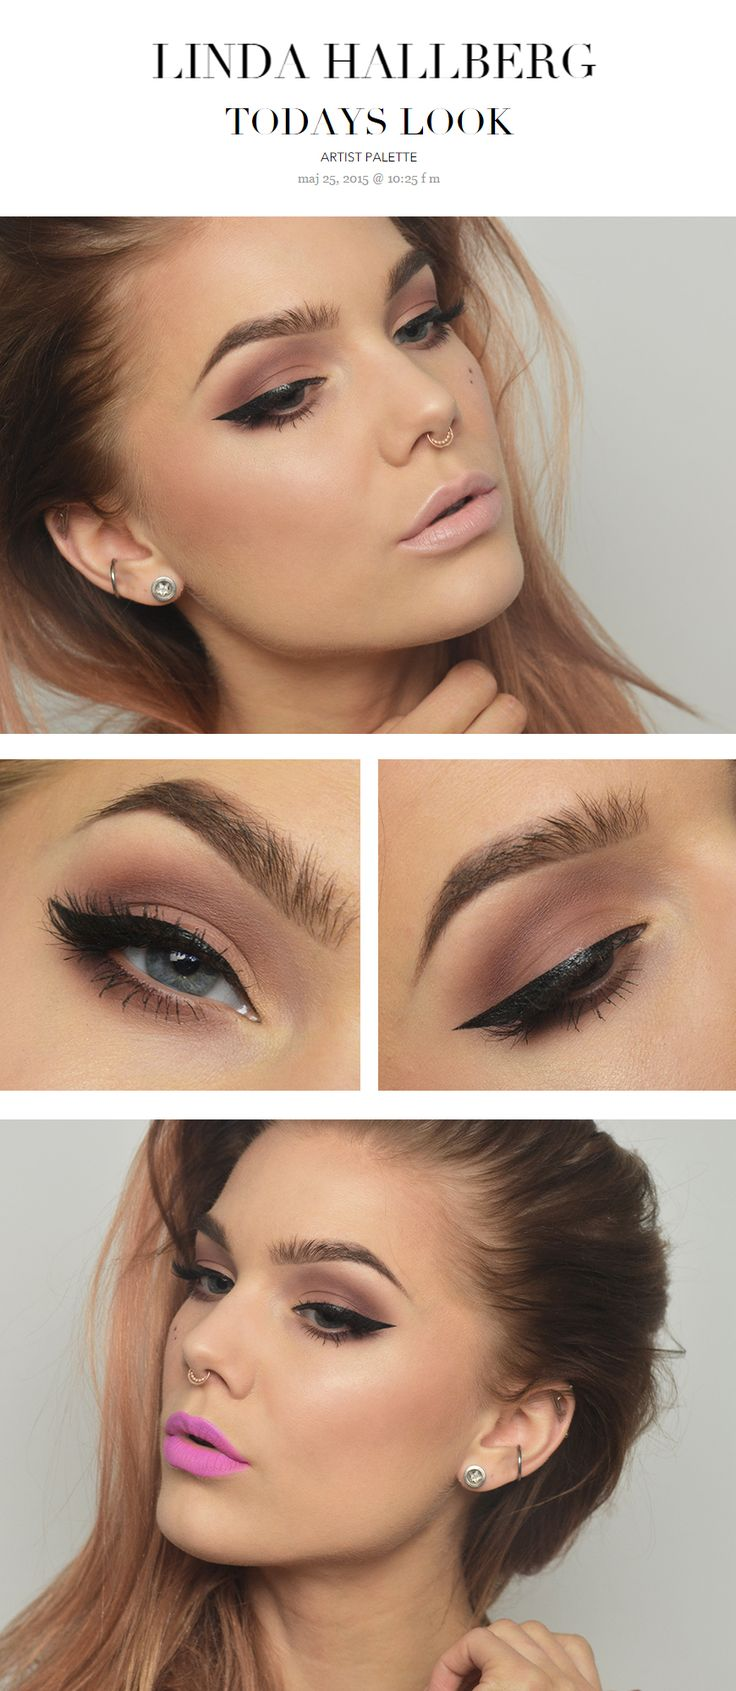 TODAYS LOOK 189 - ARTIST PALETTE by Linda Hallberg http://lindahallberg.se/  Products used; NYX proofit waterproof eyeshadow primer, Anastasia artist palette, Kat von d ink liner Trooper, Strip lash Russet feather by Katosu #eye #makeup #eyeshadow